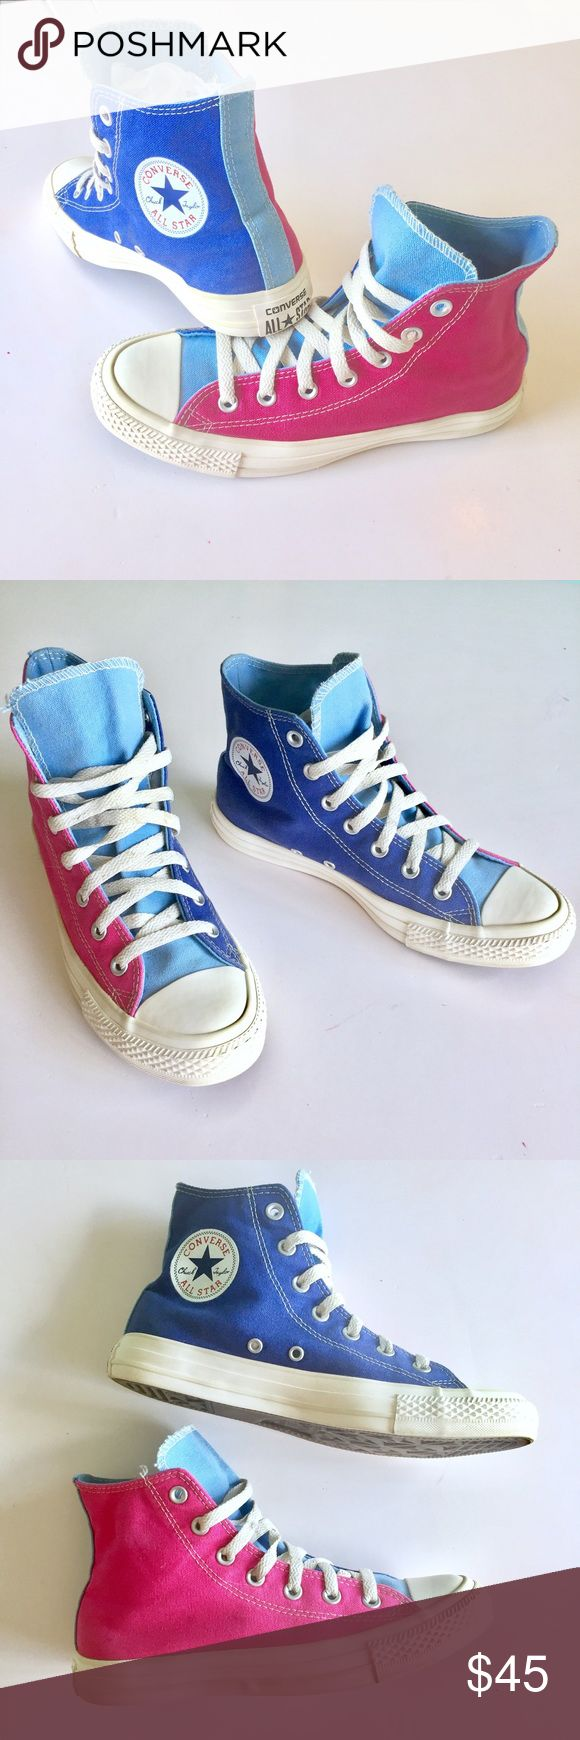 Pink and Blu Converse All Star High Tops Up for sale cool pair of Converse All Star Chuck Taylor High Tops, hot pink and blue color. Size 8. Preowned but are in pretty good condition, canvas might show slight wear, nothing major, please see photos for details. Check out my closet, bundle and give me your offer! Converse Shoes Sneakers